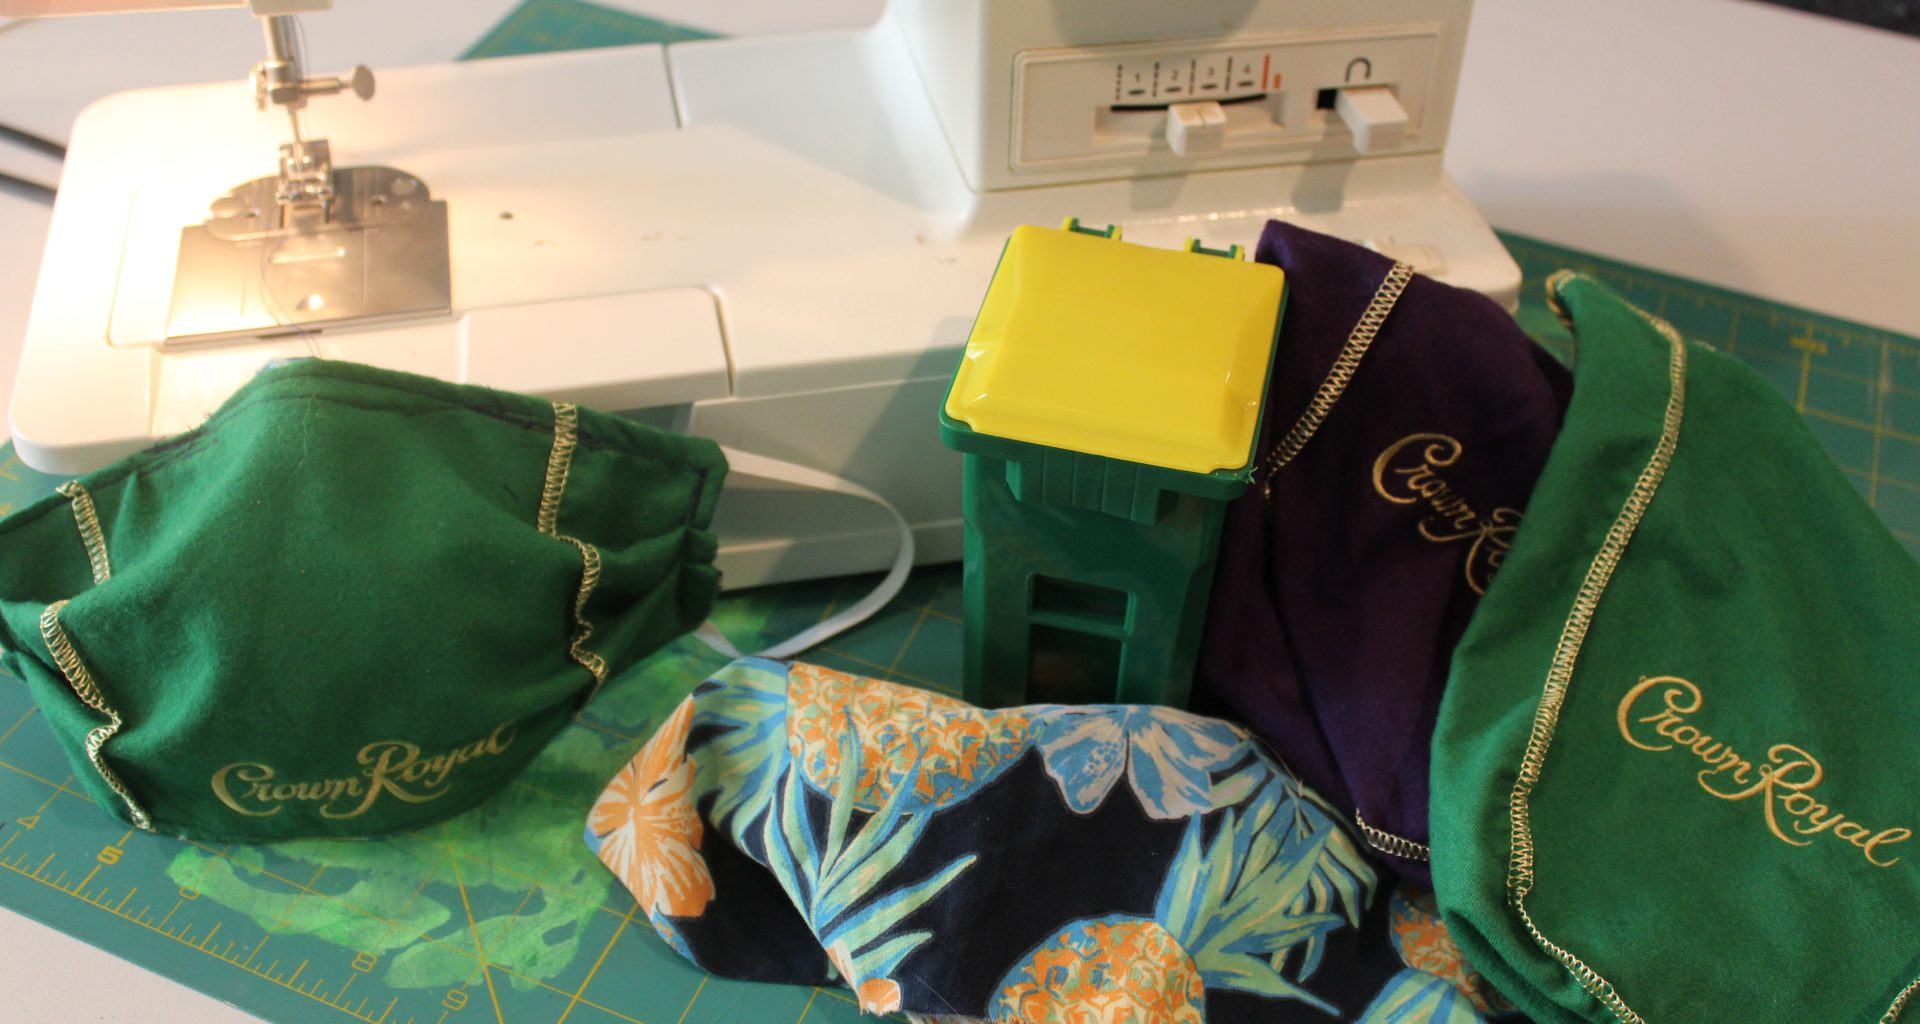 sewing machine, crown royal bags, material, and mini garbage can